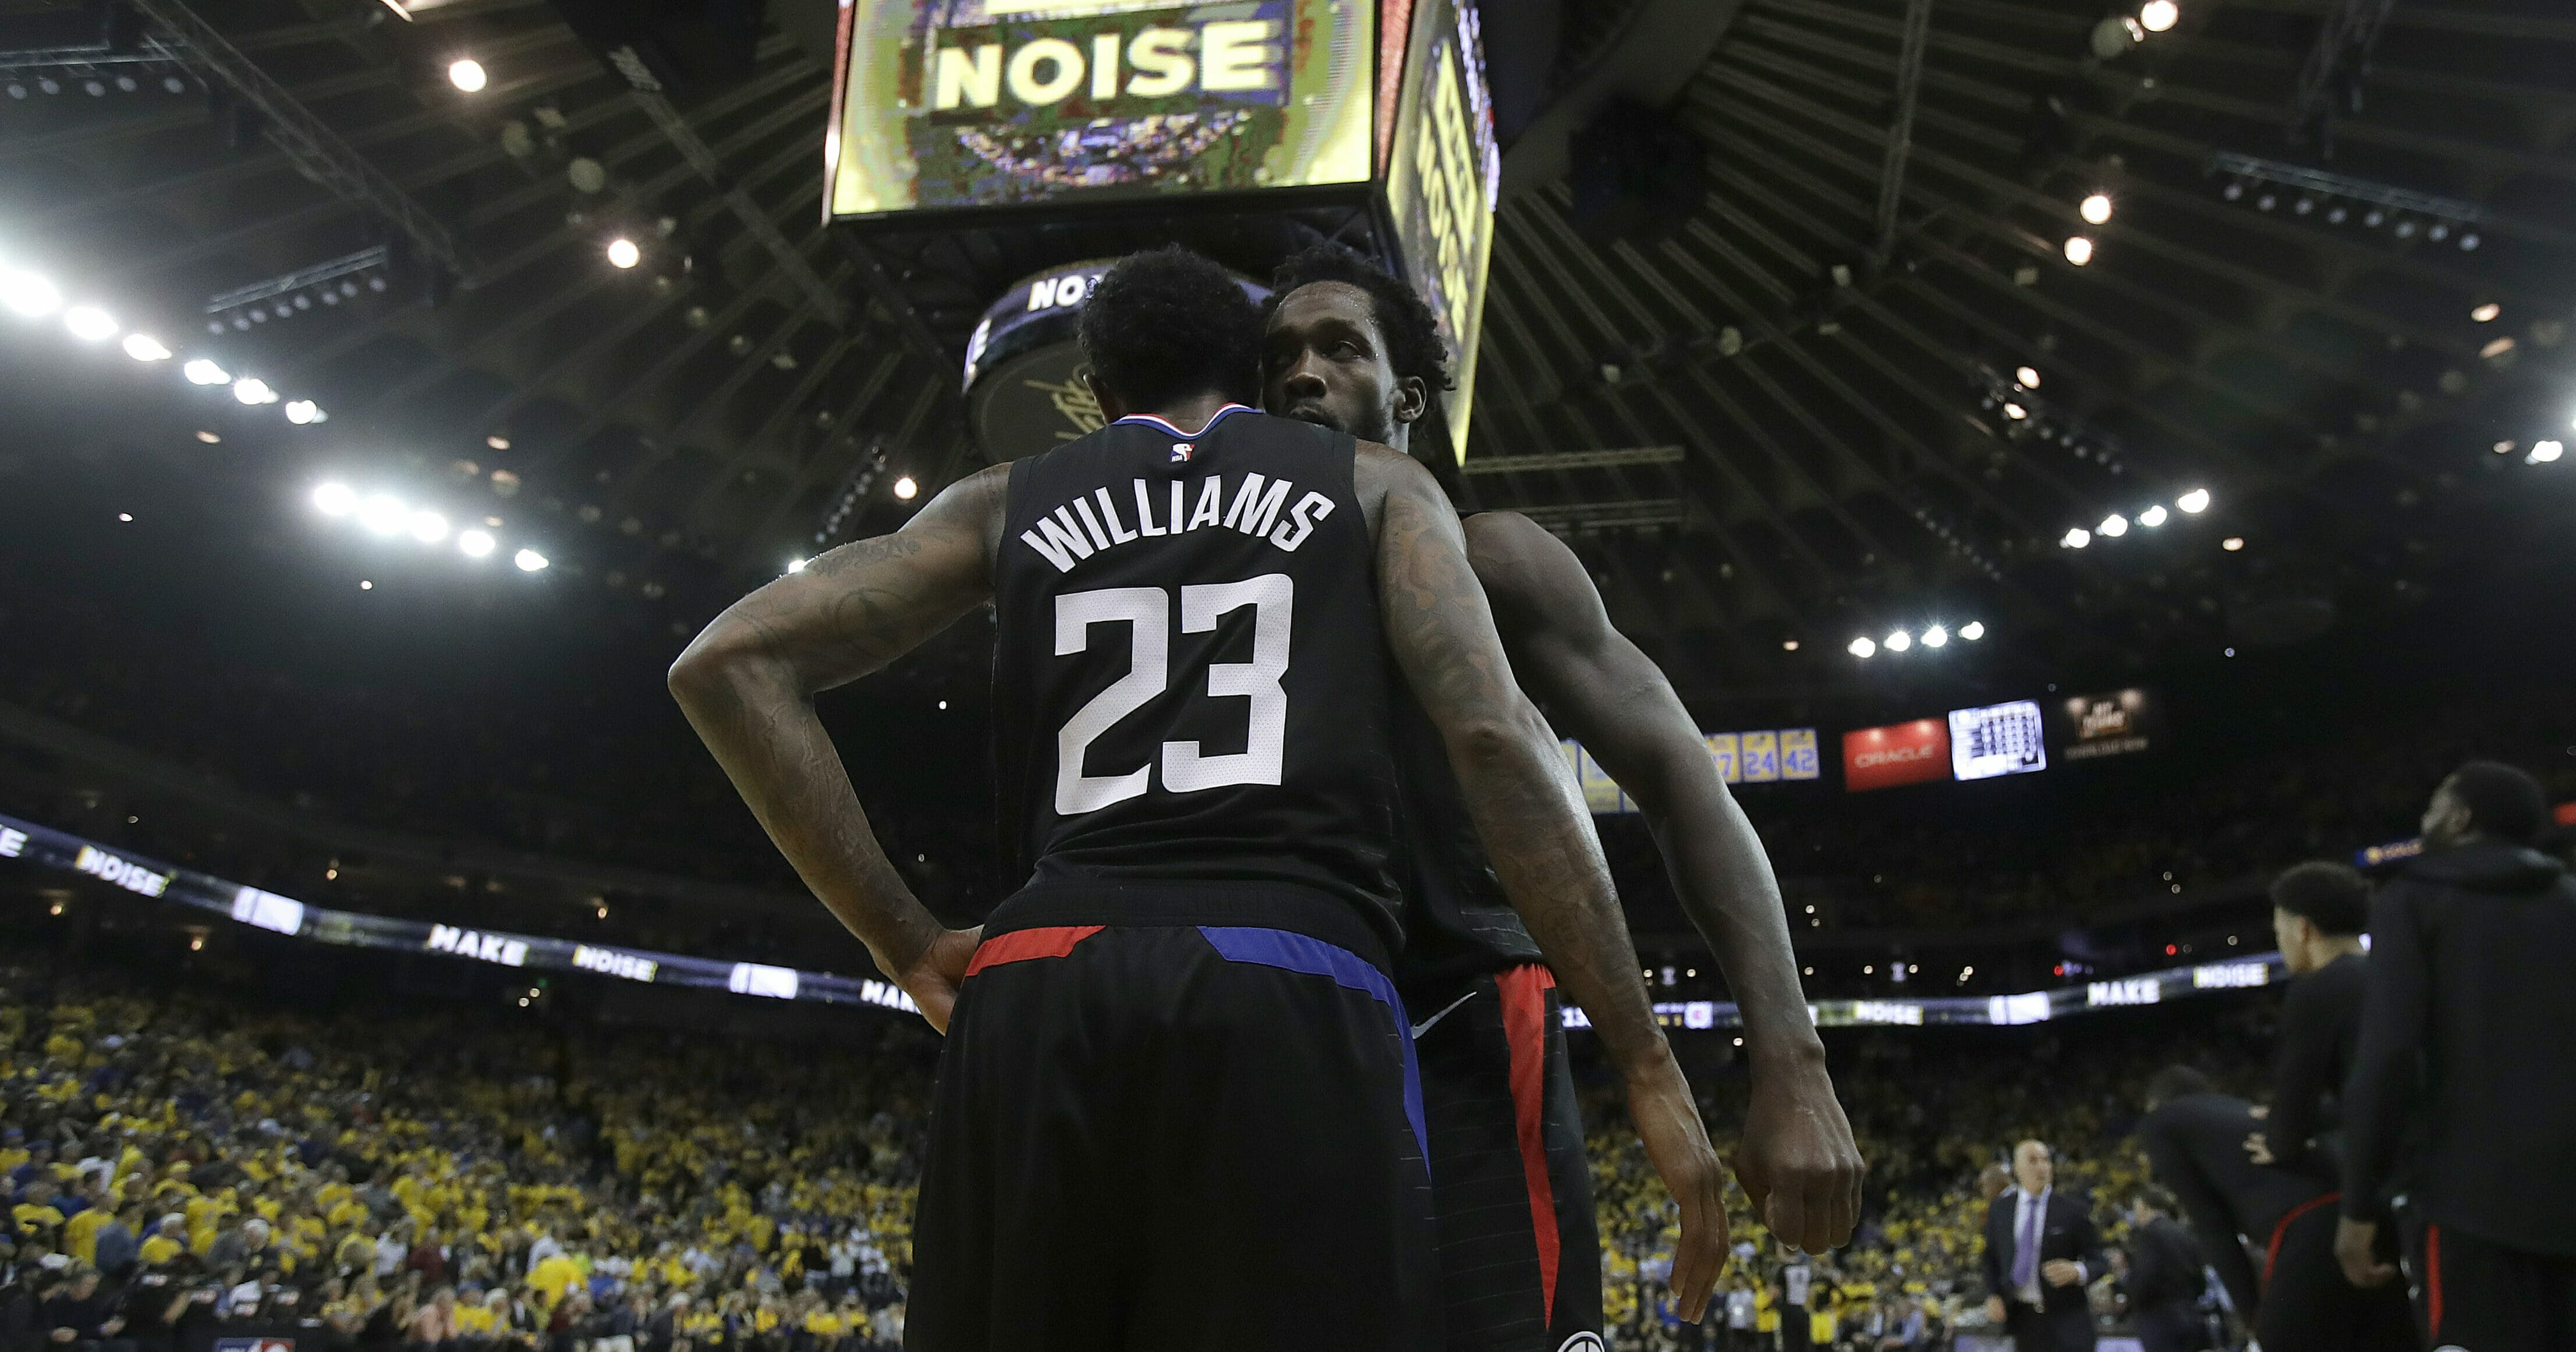 Los Angeles Clippers guard Lou Williams celebrates with Patrick Beverley during the second half of Game 2 of a first-round NBA basketball playoff series against the Golden State Warriors in Oakland, Calif., Monday, April 15, 2019.